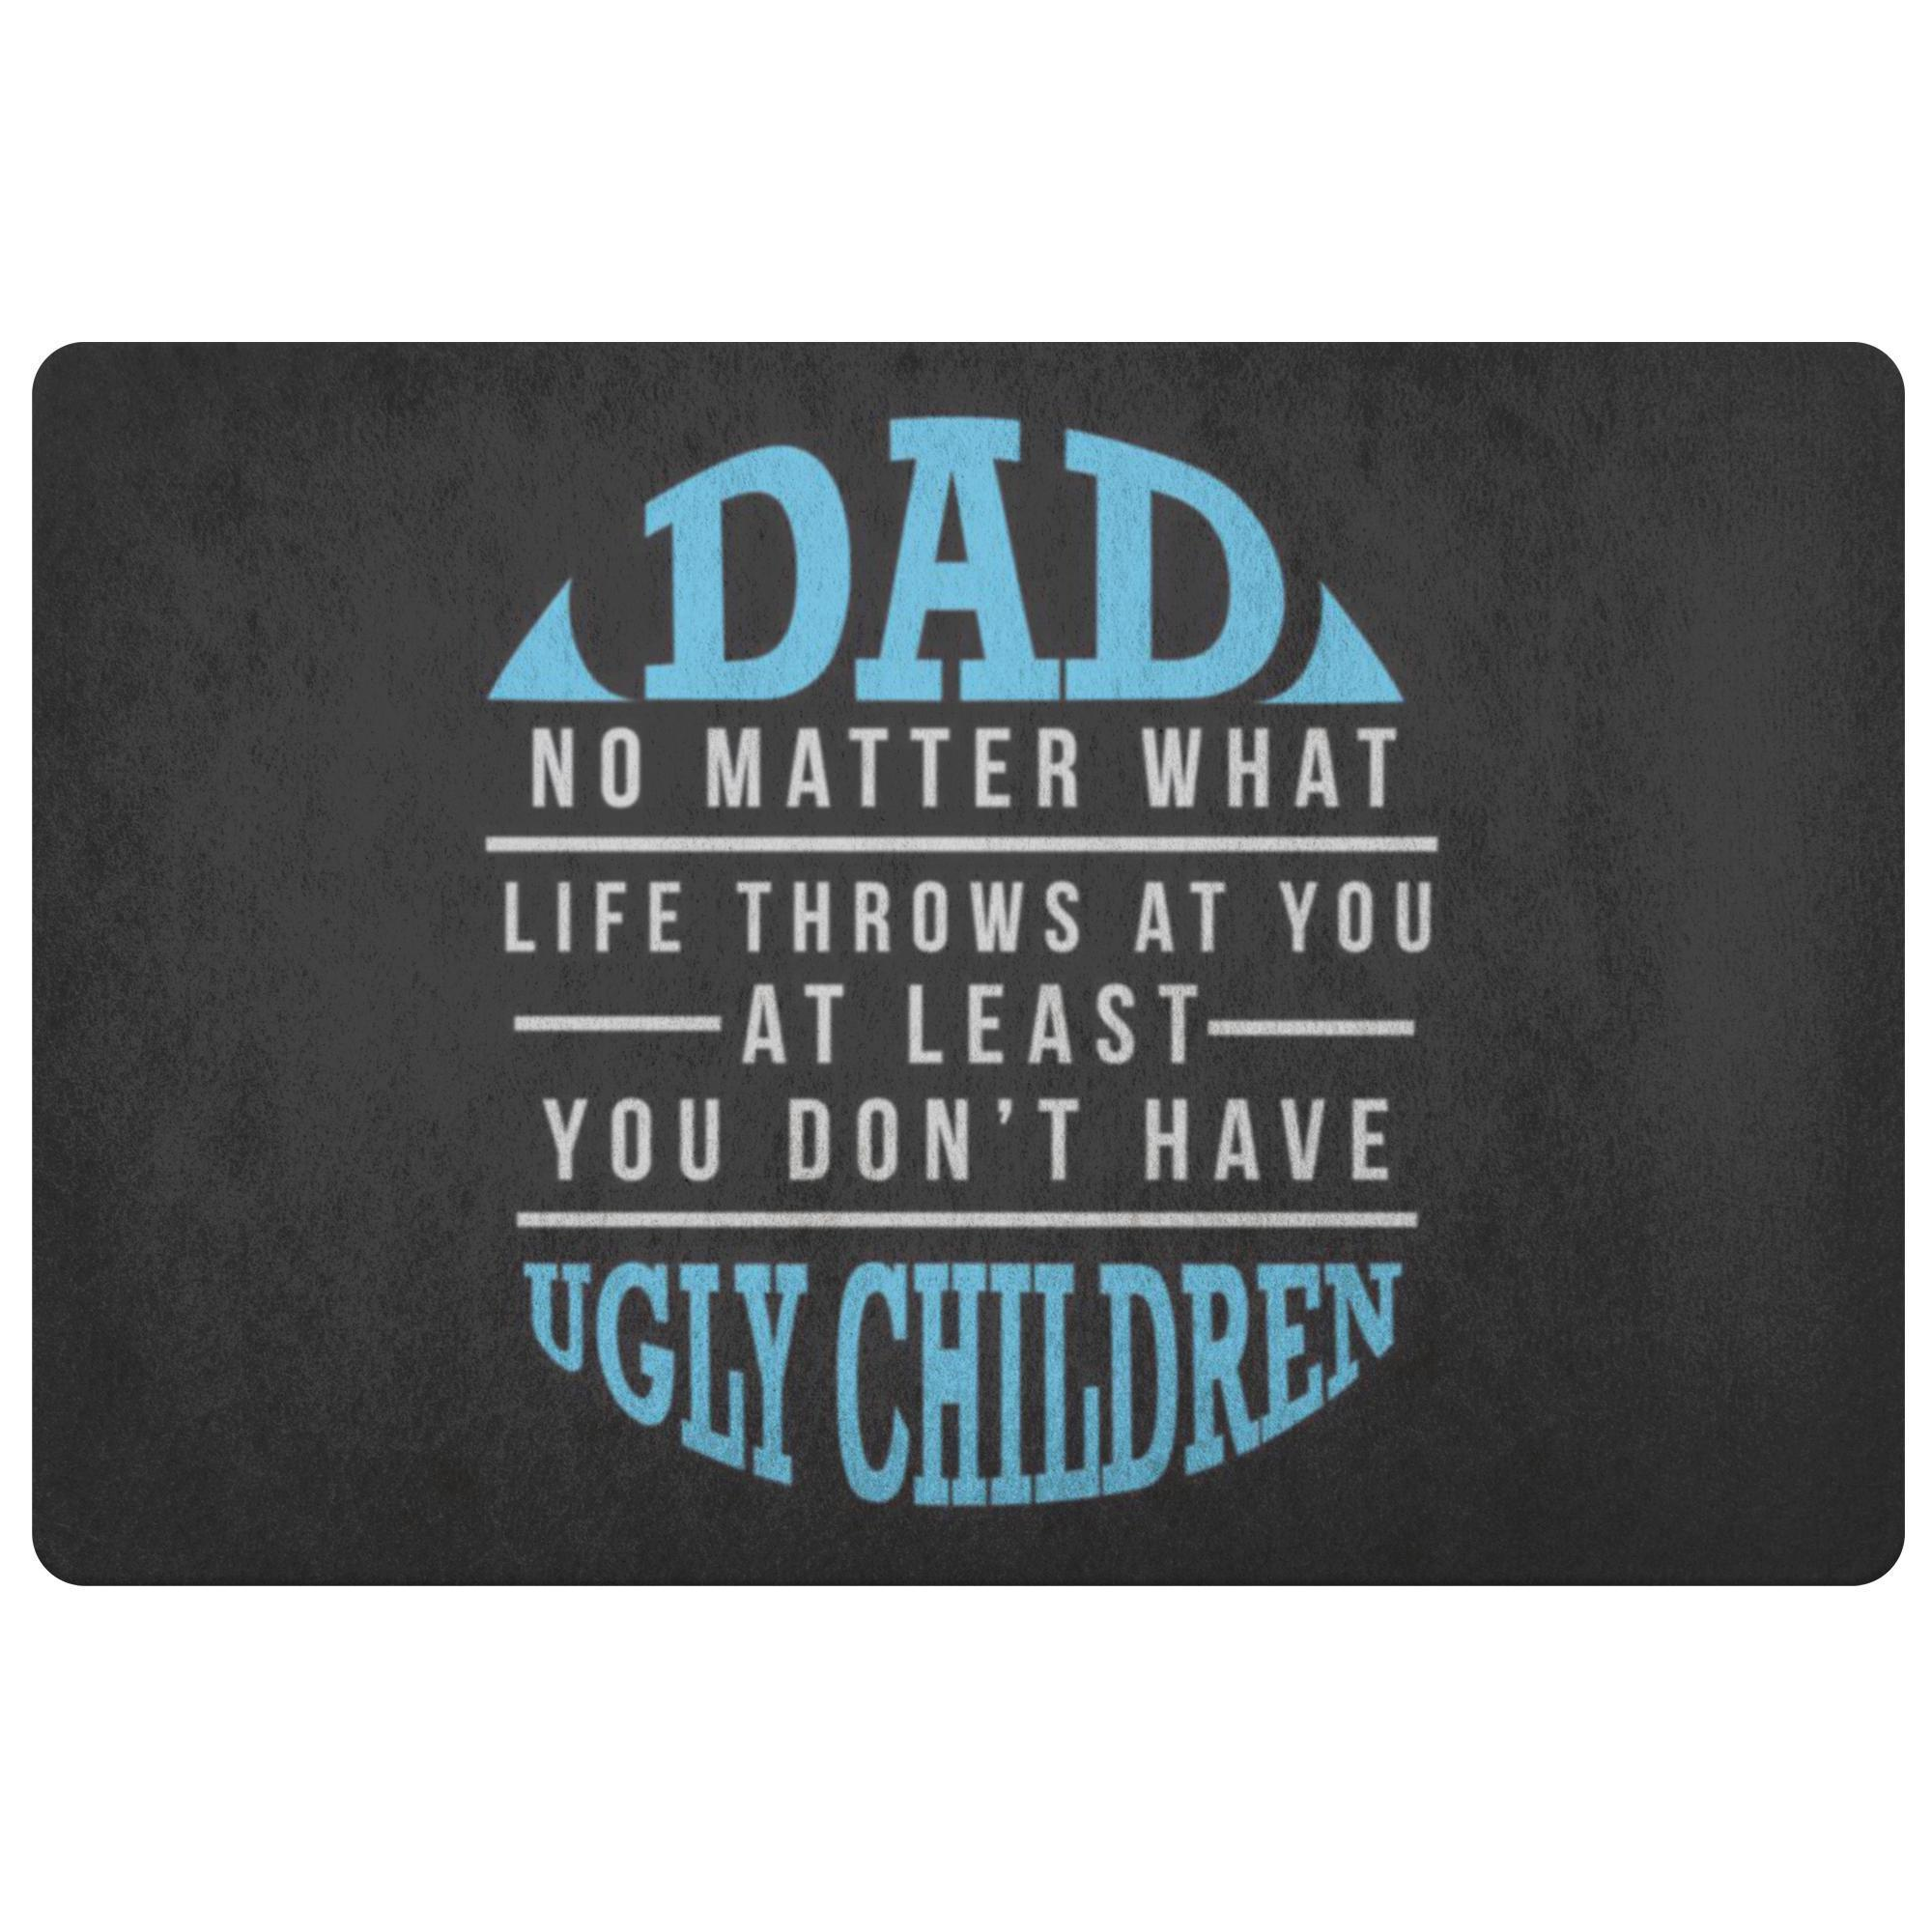 Dad No Matter What At Least You Dont Have Ugly Children 18X26 Front Door Mat-Doormat-Black-JoyHip.Com